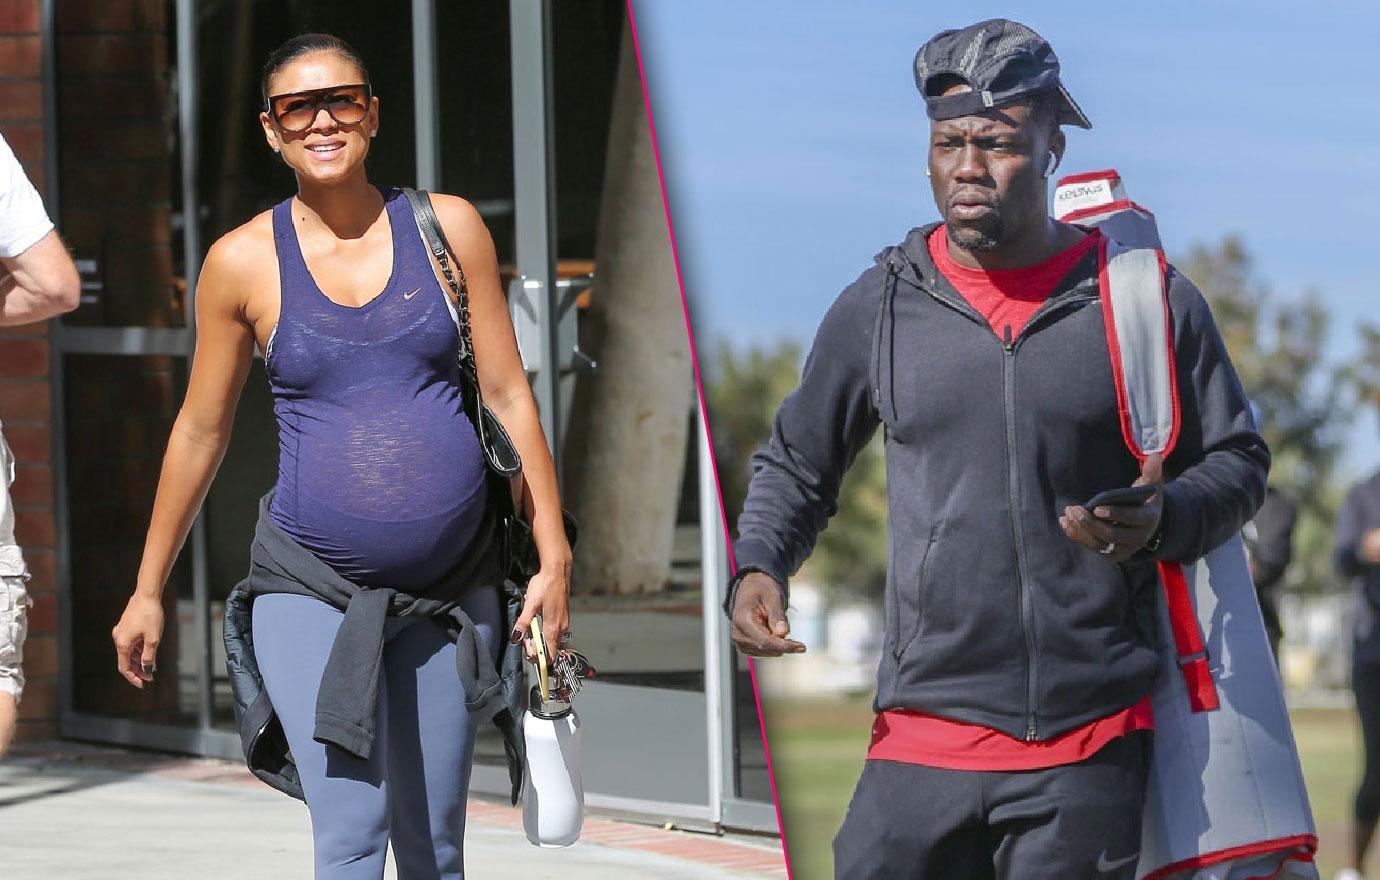 Kevin Hart Spotted Without Pregnant Wife Amid Cheating Scandal